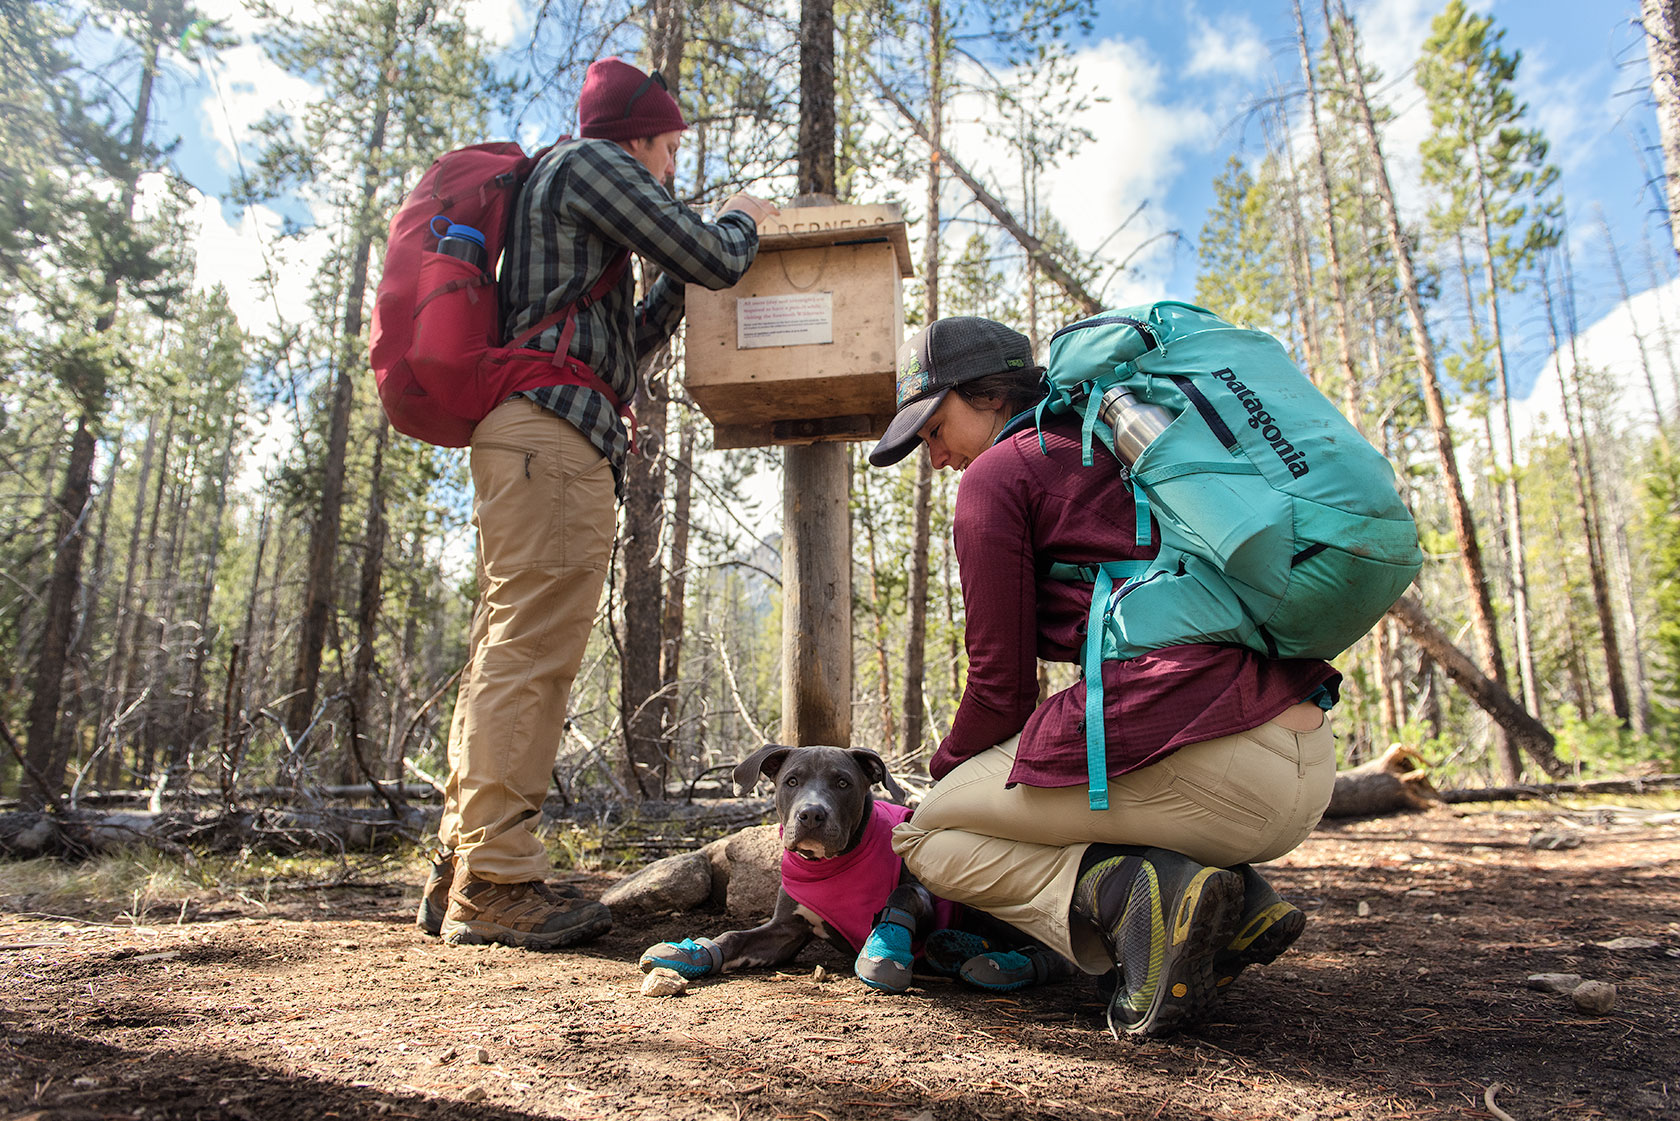 austin-trigg-patagonia-sawtooth-hiking-advenure-wilderness-forest-idaho-outside-lifestyle-day-fall-weather-mountains-permits-backpacks-dog-sunrise.jpg